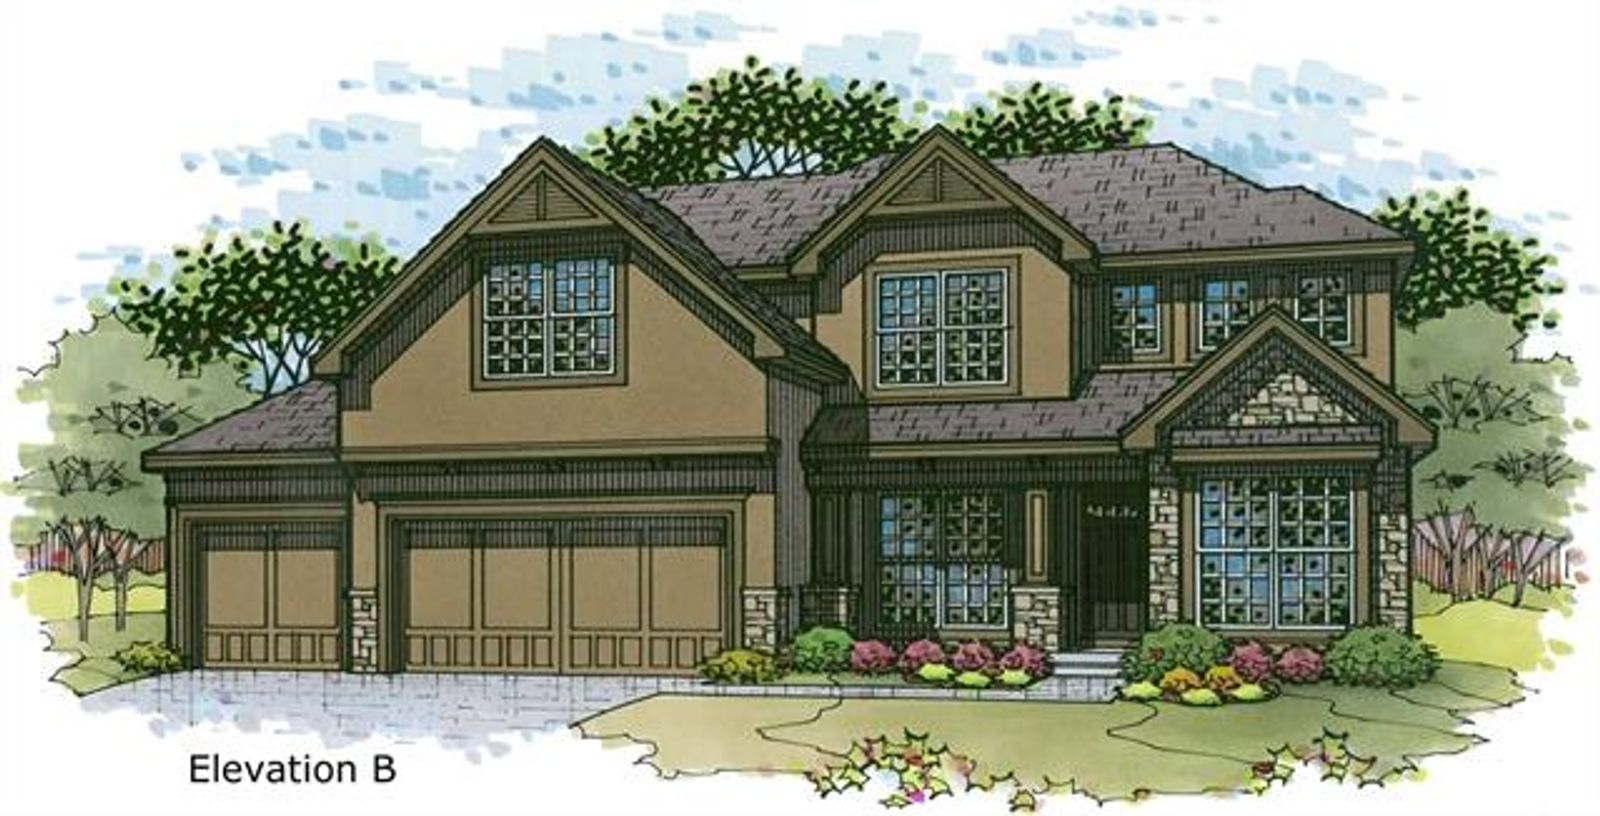 The Irving 2 Story. Lot 70 - 24103 W 124th Terr will be Elevation B. Pictures are of Model, Not Actual Home. Pictures May Feature Upgrades. Please Contact Listing Agent for Stage of Construction, Upgrades, and Available Buyer Selections.